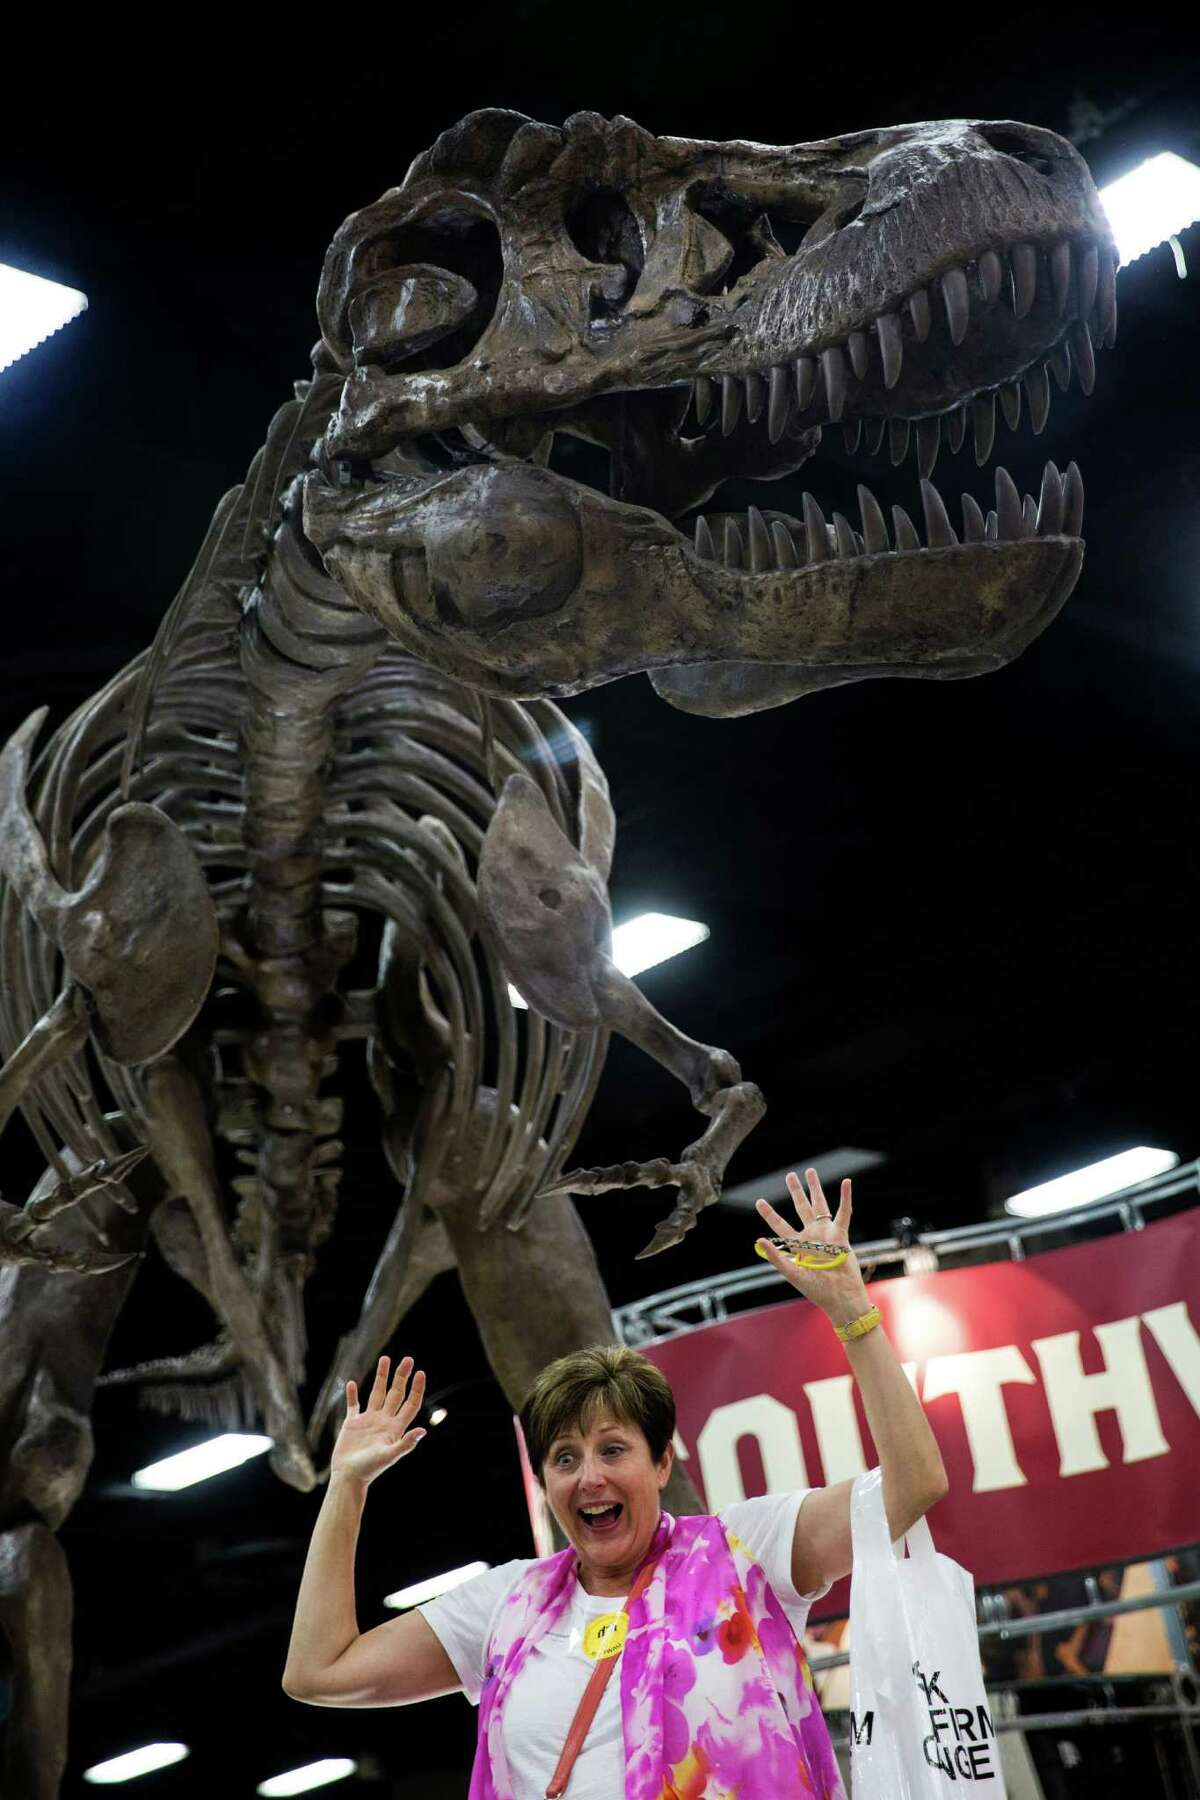 Inside the Henry B. Gonzalez Convention Center, Mary King of Chattanooga, Tennessee, poses for a picture with a model of a dinosaur at The 60th General Conference Session of the Seventh-day Adventist Church in San Antonio, Texas. Ray Whitehouse / San Antonio Express-News